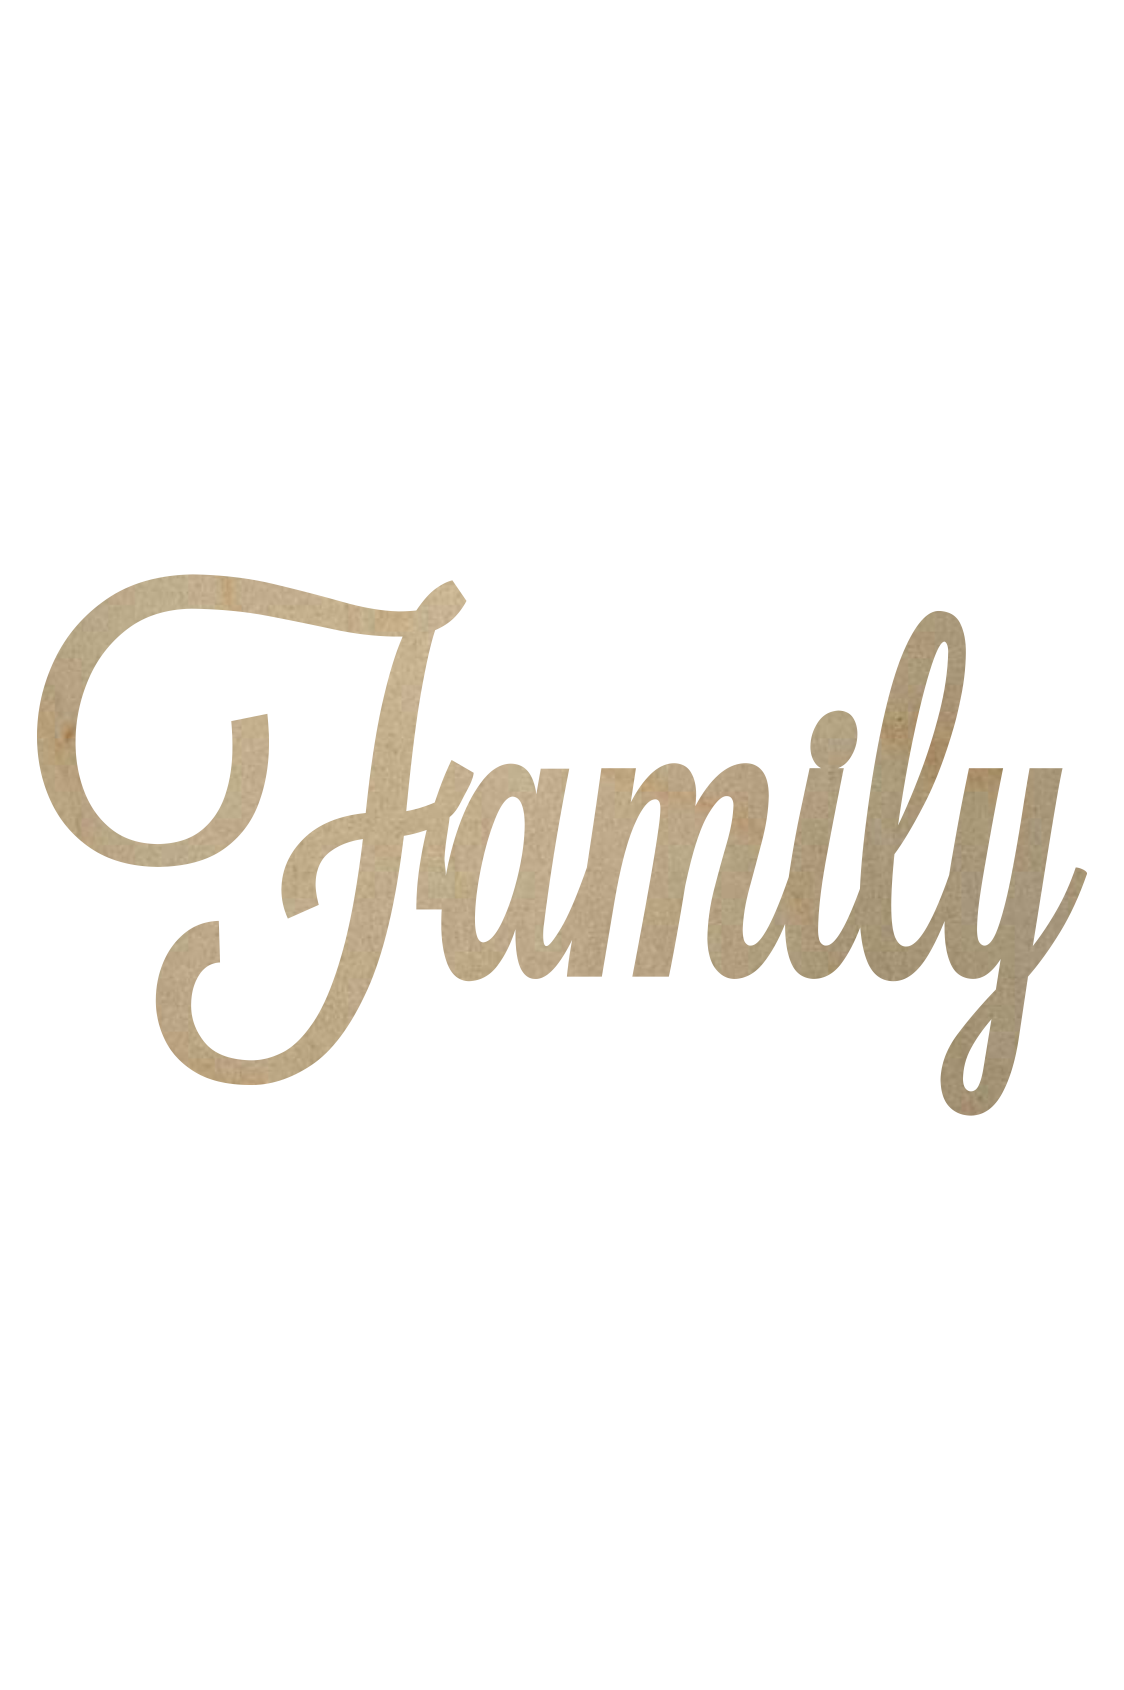 graphic royalty free download transparent family calligraphy #116846694